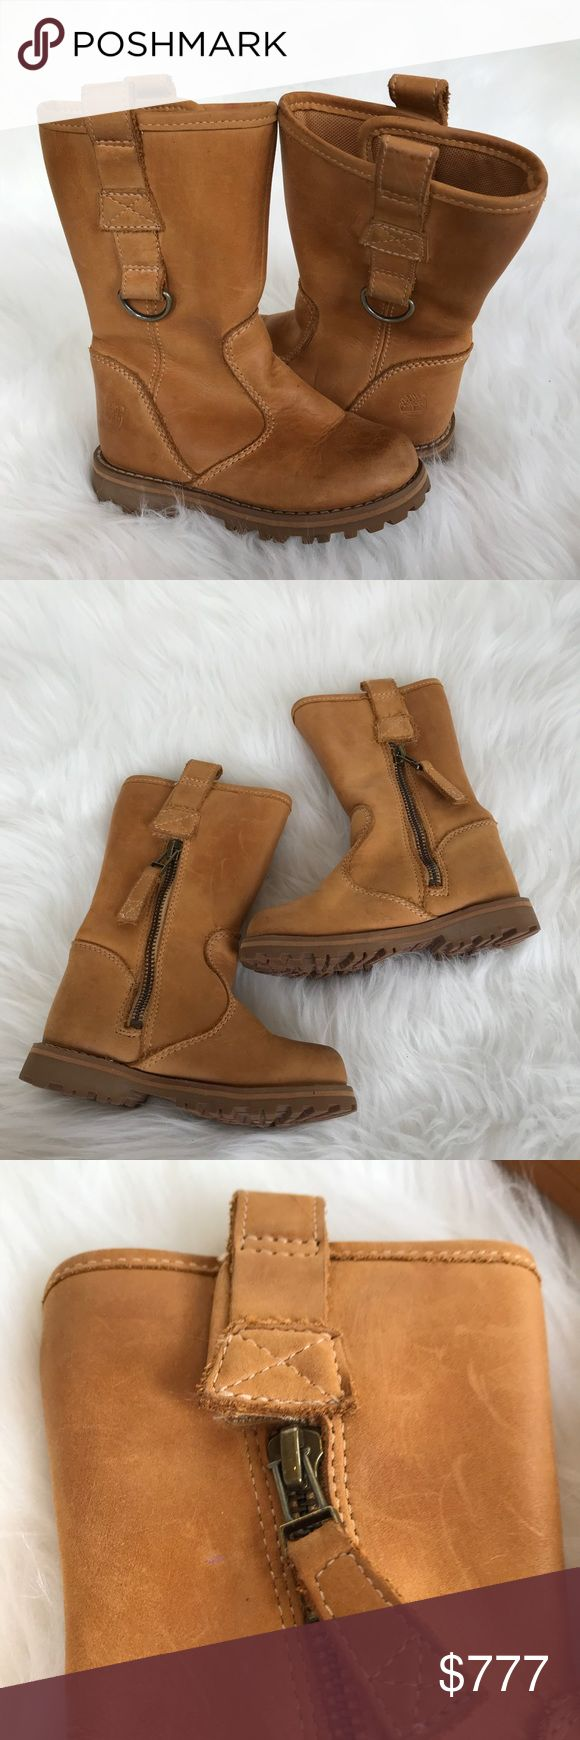 Timberland Girl's Pull On Side Zip Leather Boots Timberland Girl's Pull On Side Zip Leather Boots in tan! Love this adorable toddler girl boots! Perfect in rain, snow or everyday wear! Side zipper & pull on straps. Size 8. Bottoms show no signs of wear. Leather has minimal/normal wear. LW2653110517 Timberland Shoes Boots